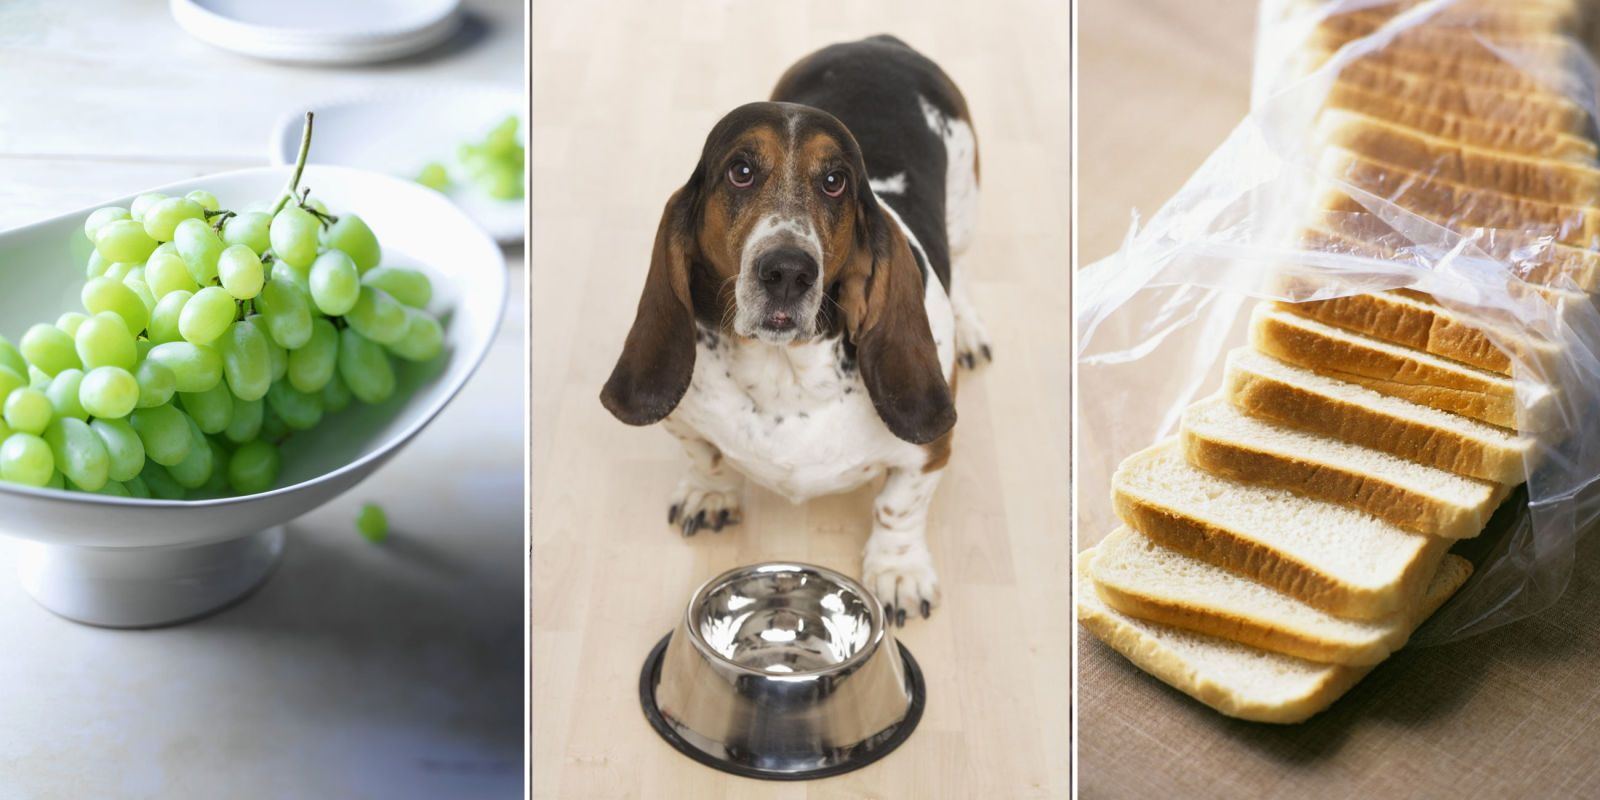 13 Things You Should Never Feed Your Dog - GoodHousekeeping.com